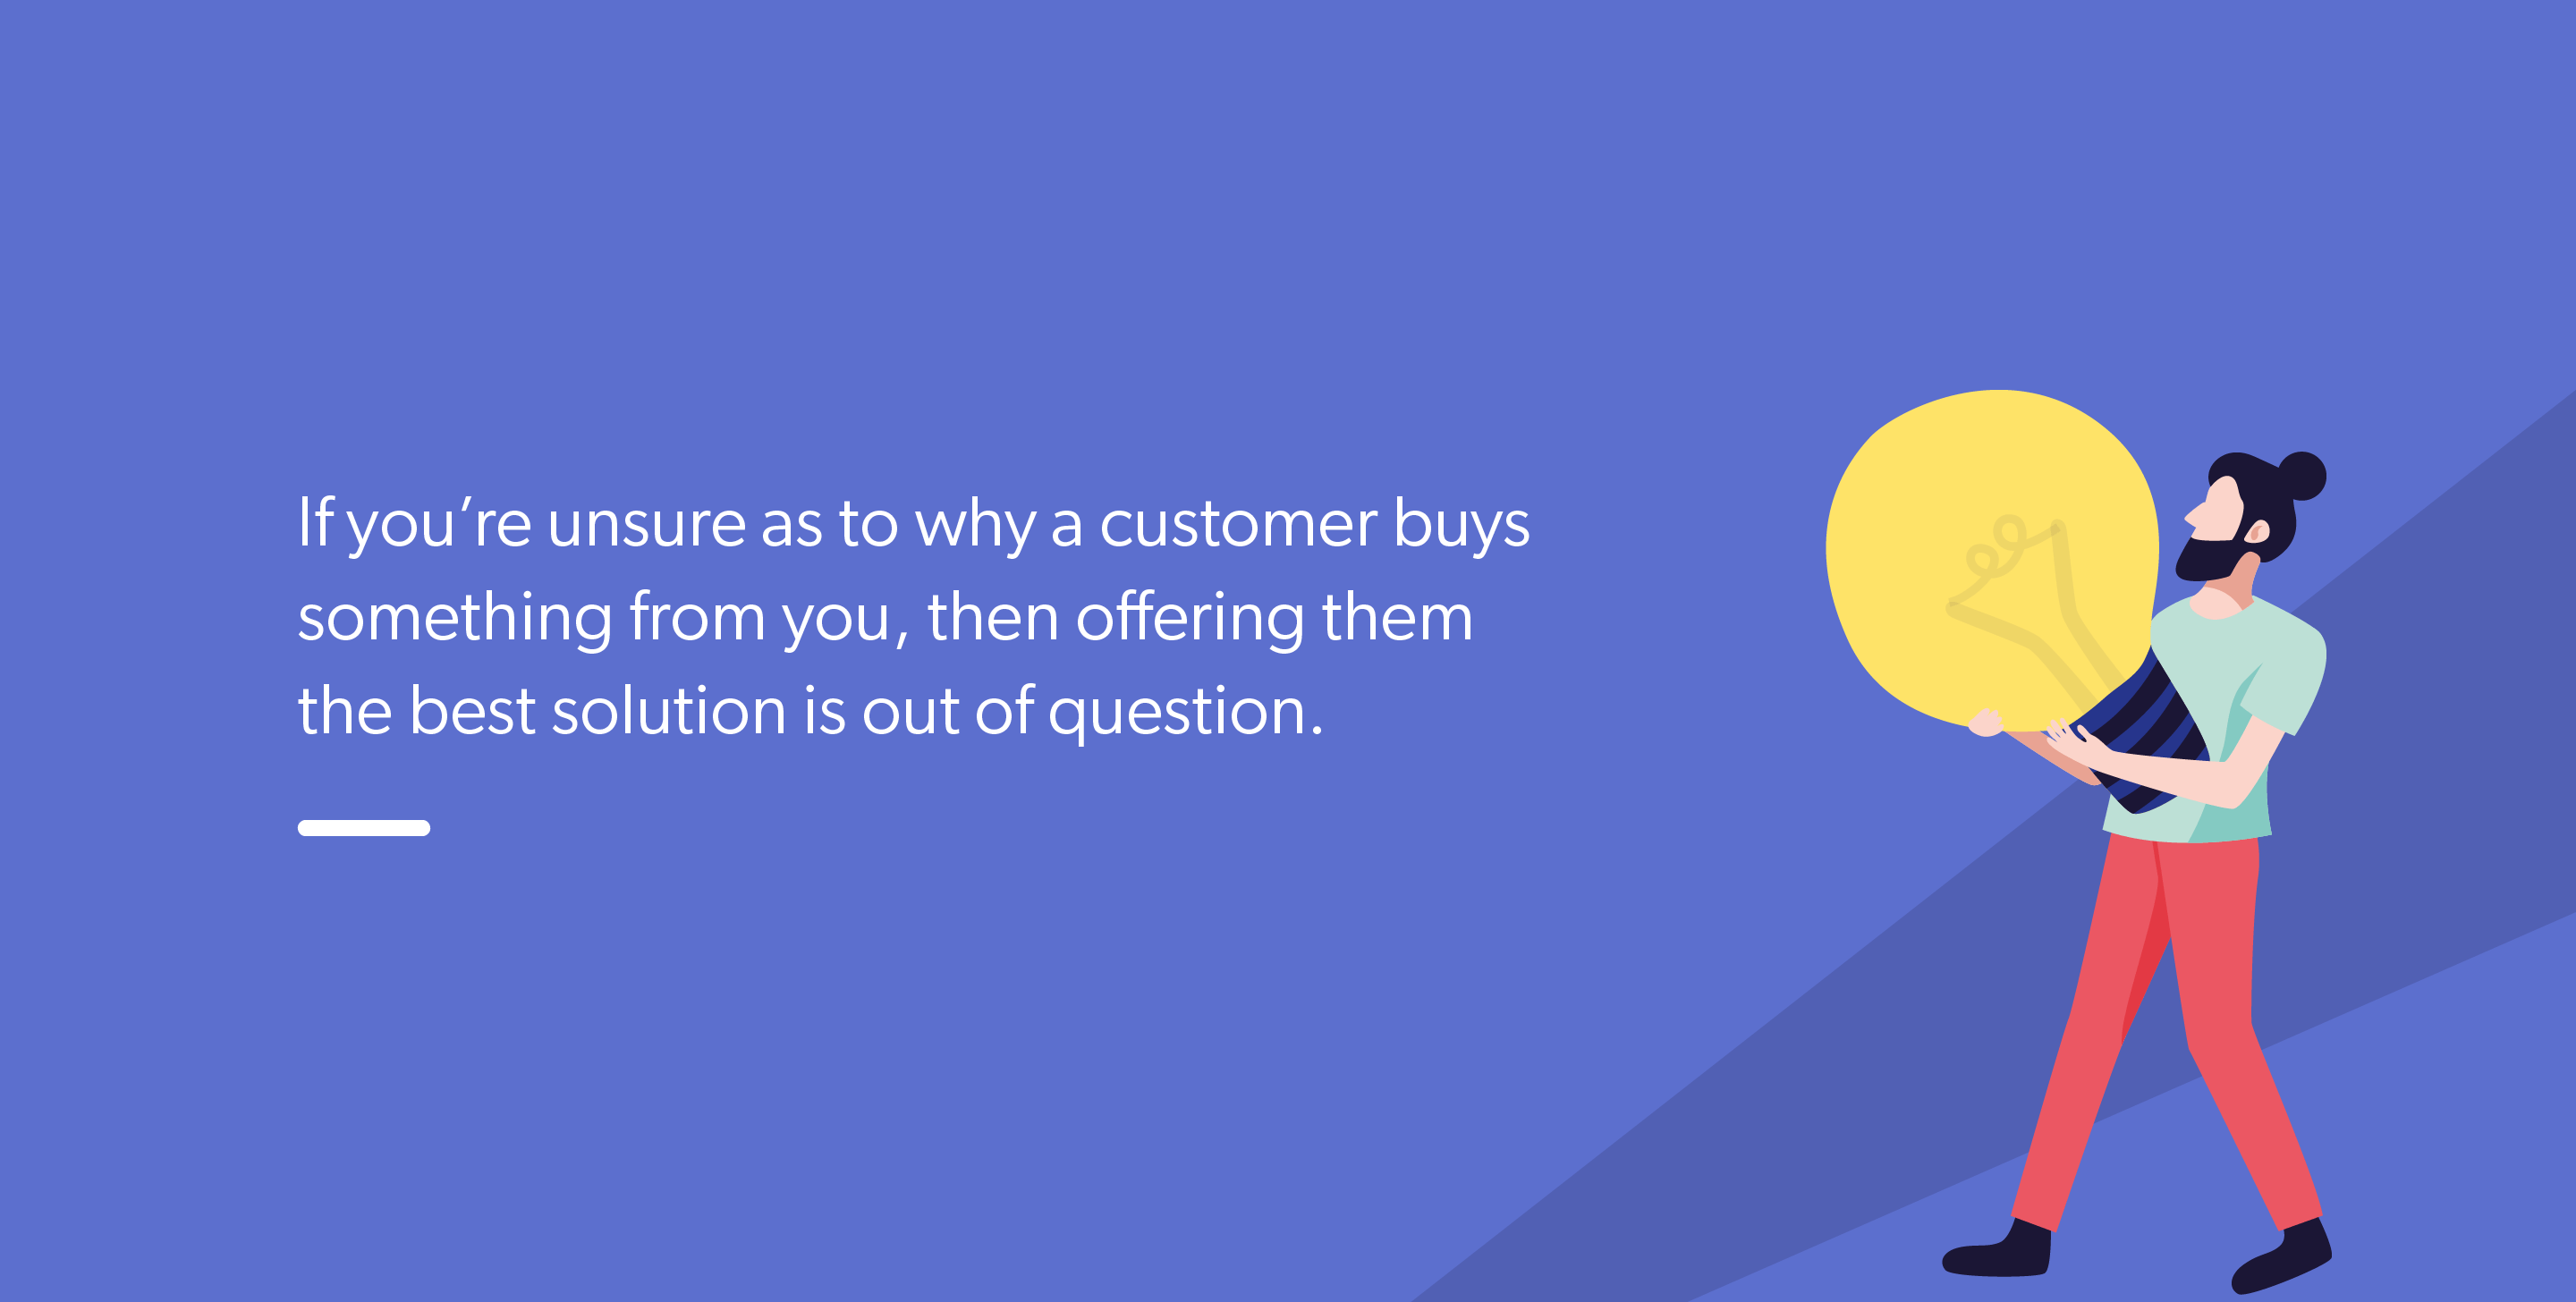 If you're unsure as to why a customer buys something from you, then offering them the best solution is out of question.